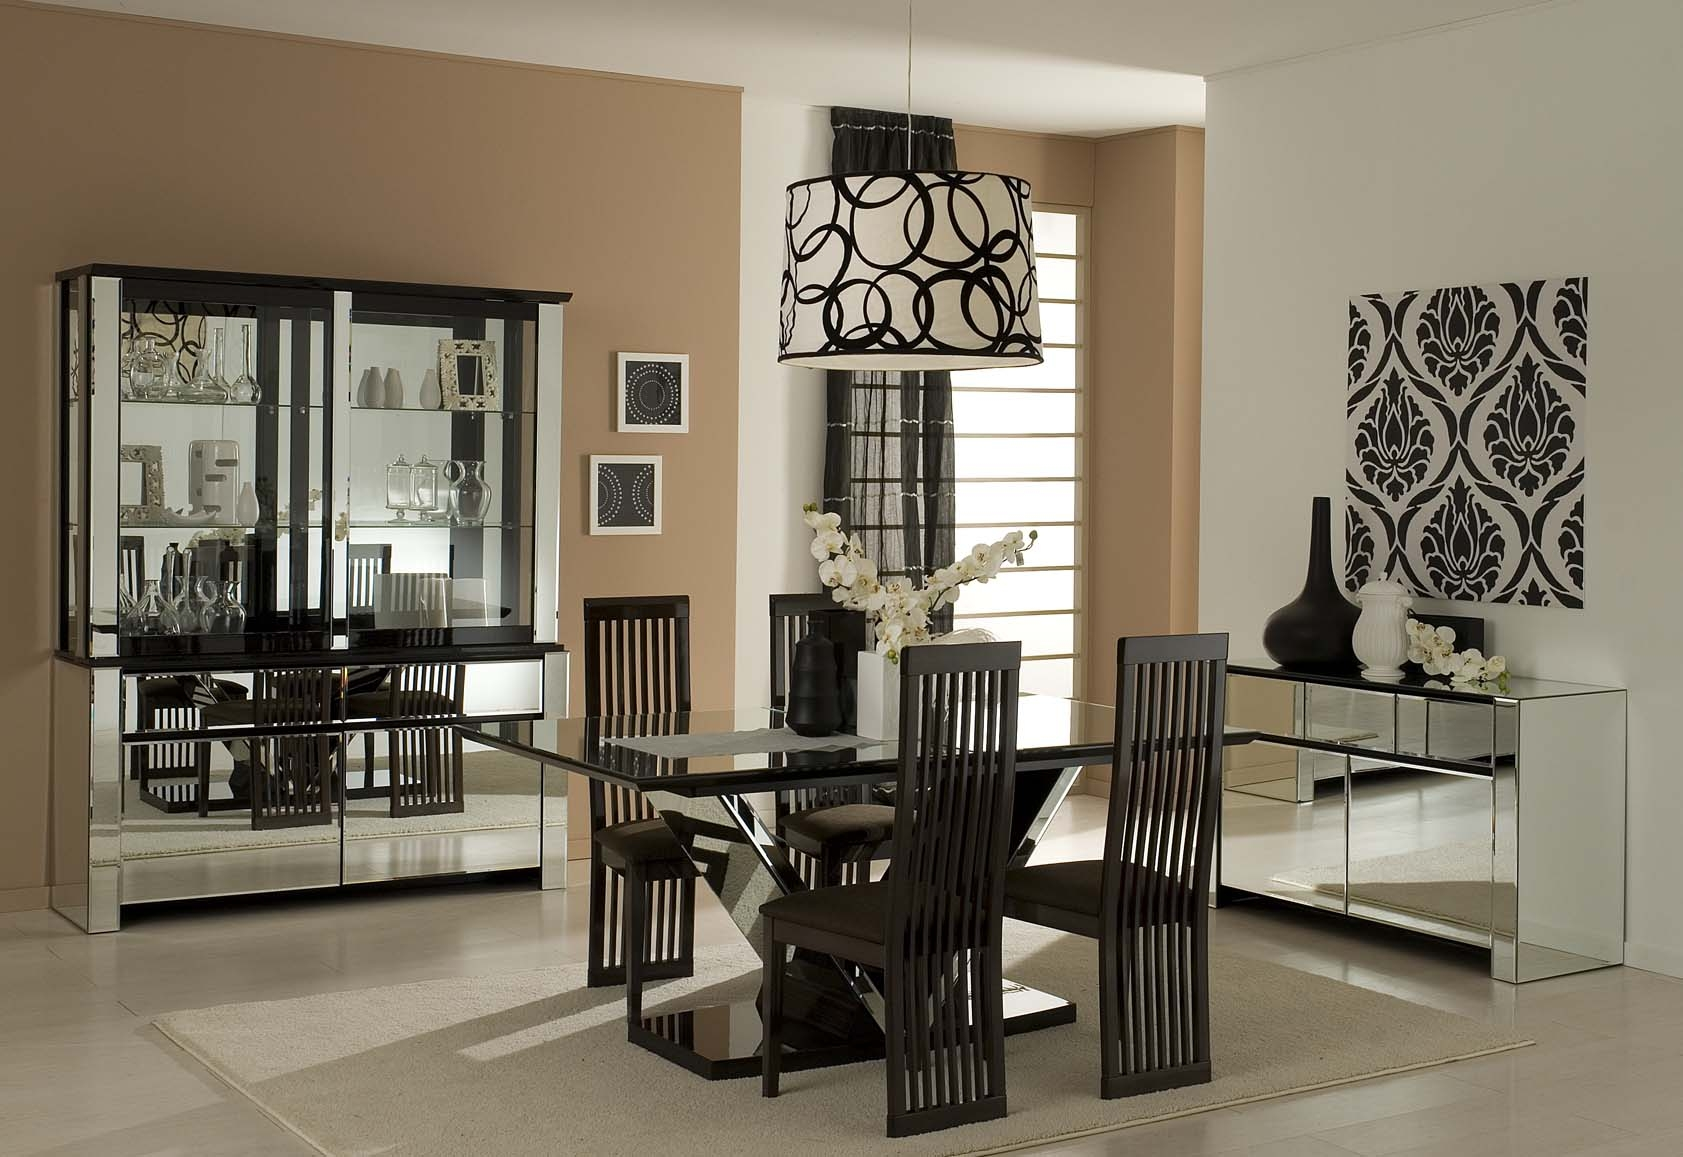 Wall decorating ideas for dining room Photo - 1